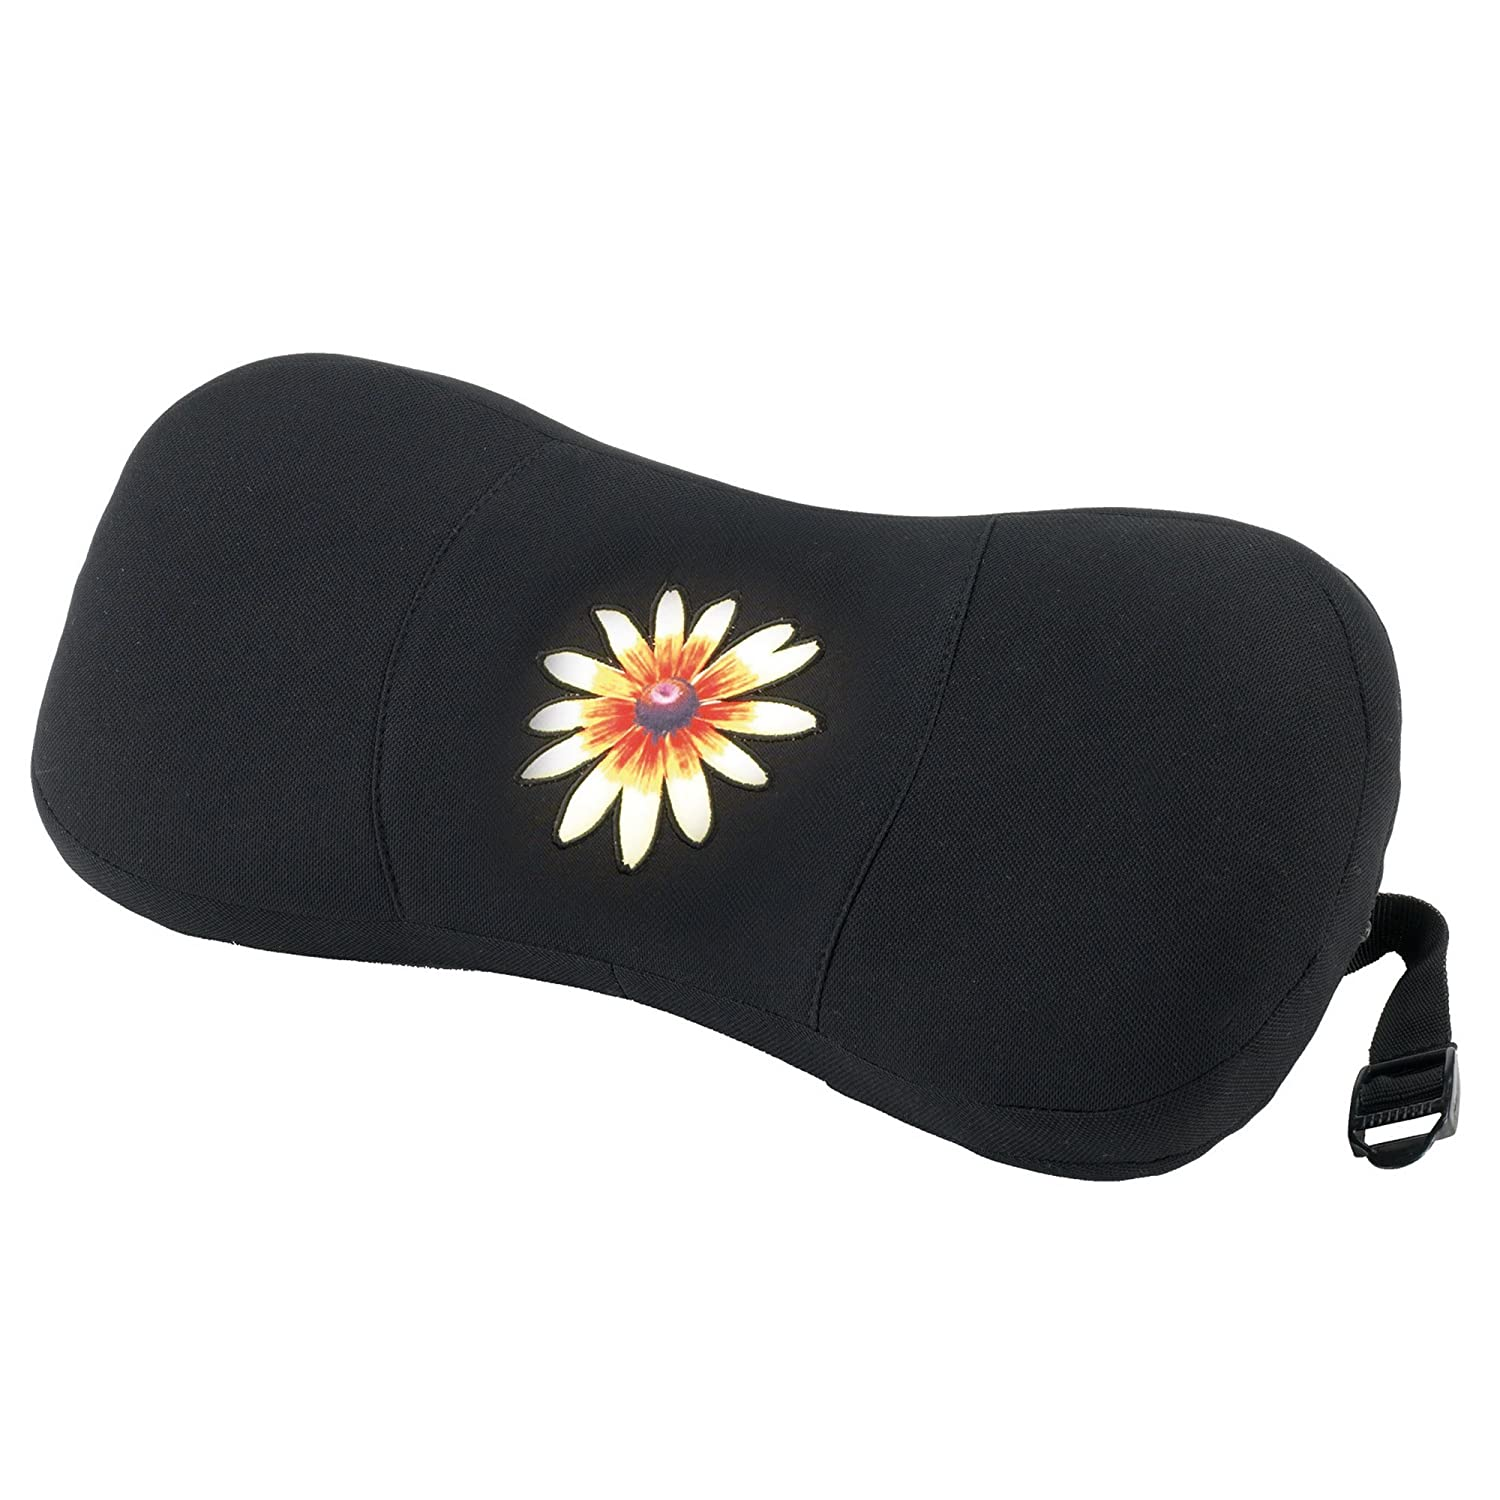 Bottari SpA 17169 My Daisy Neck Support